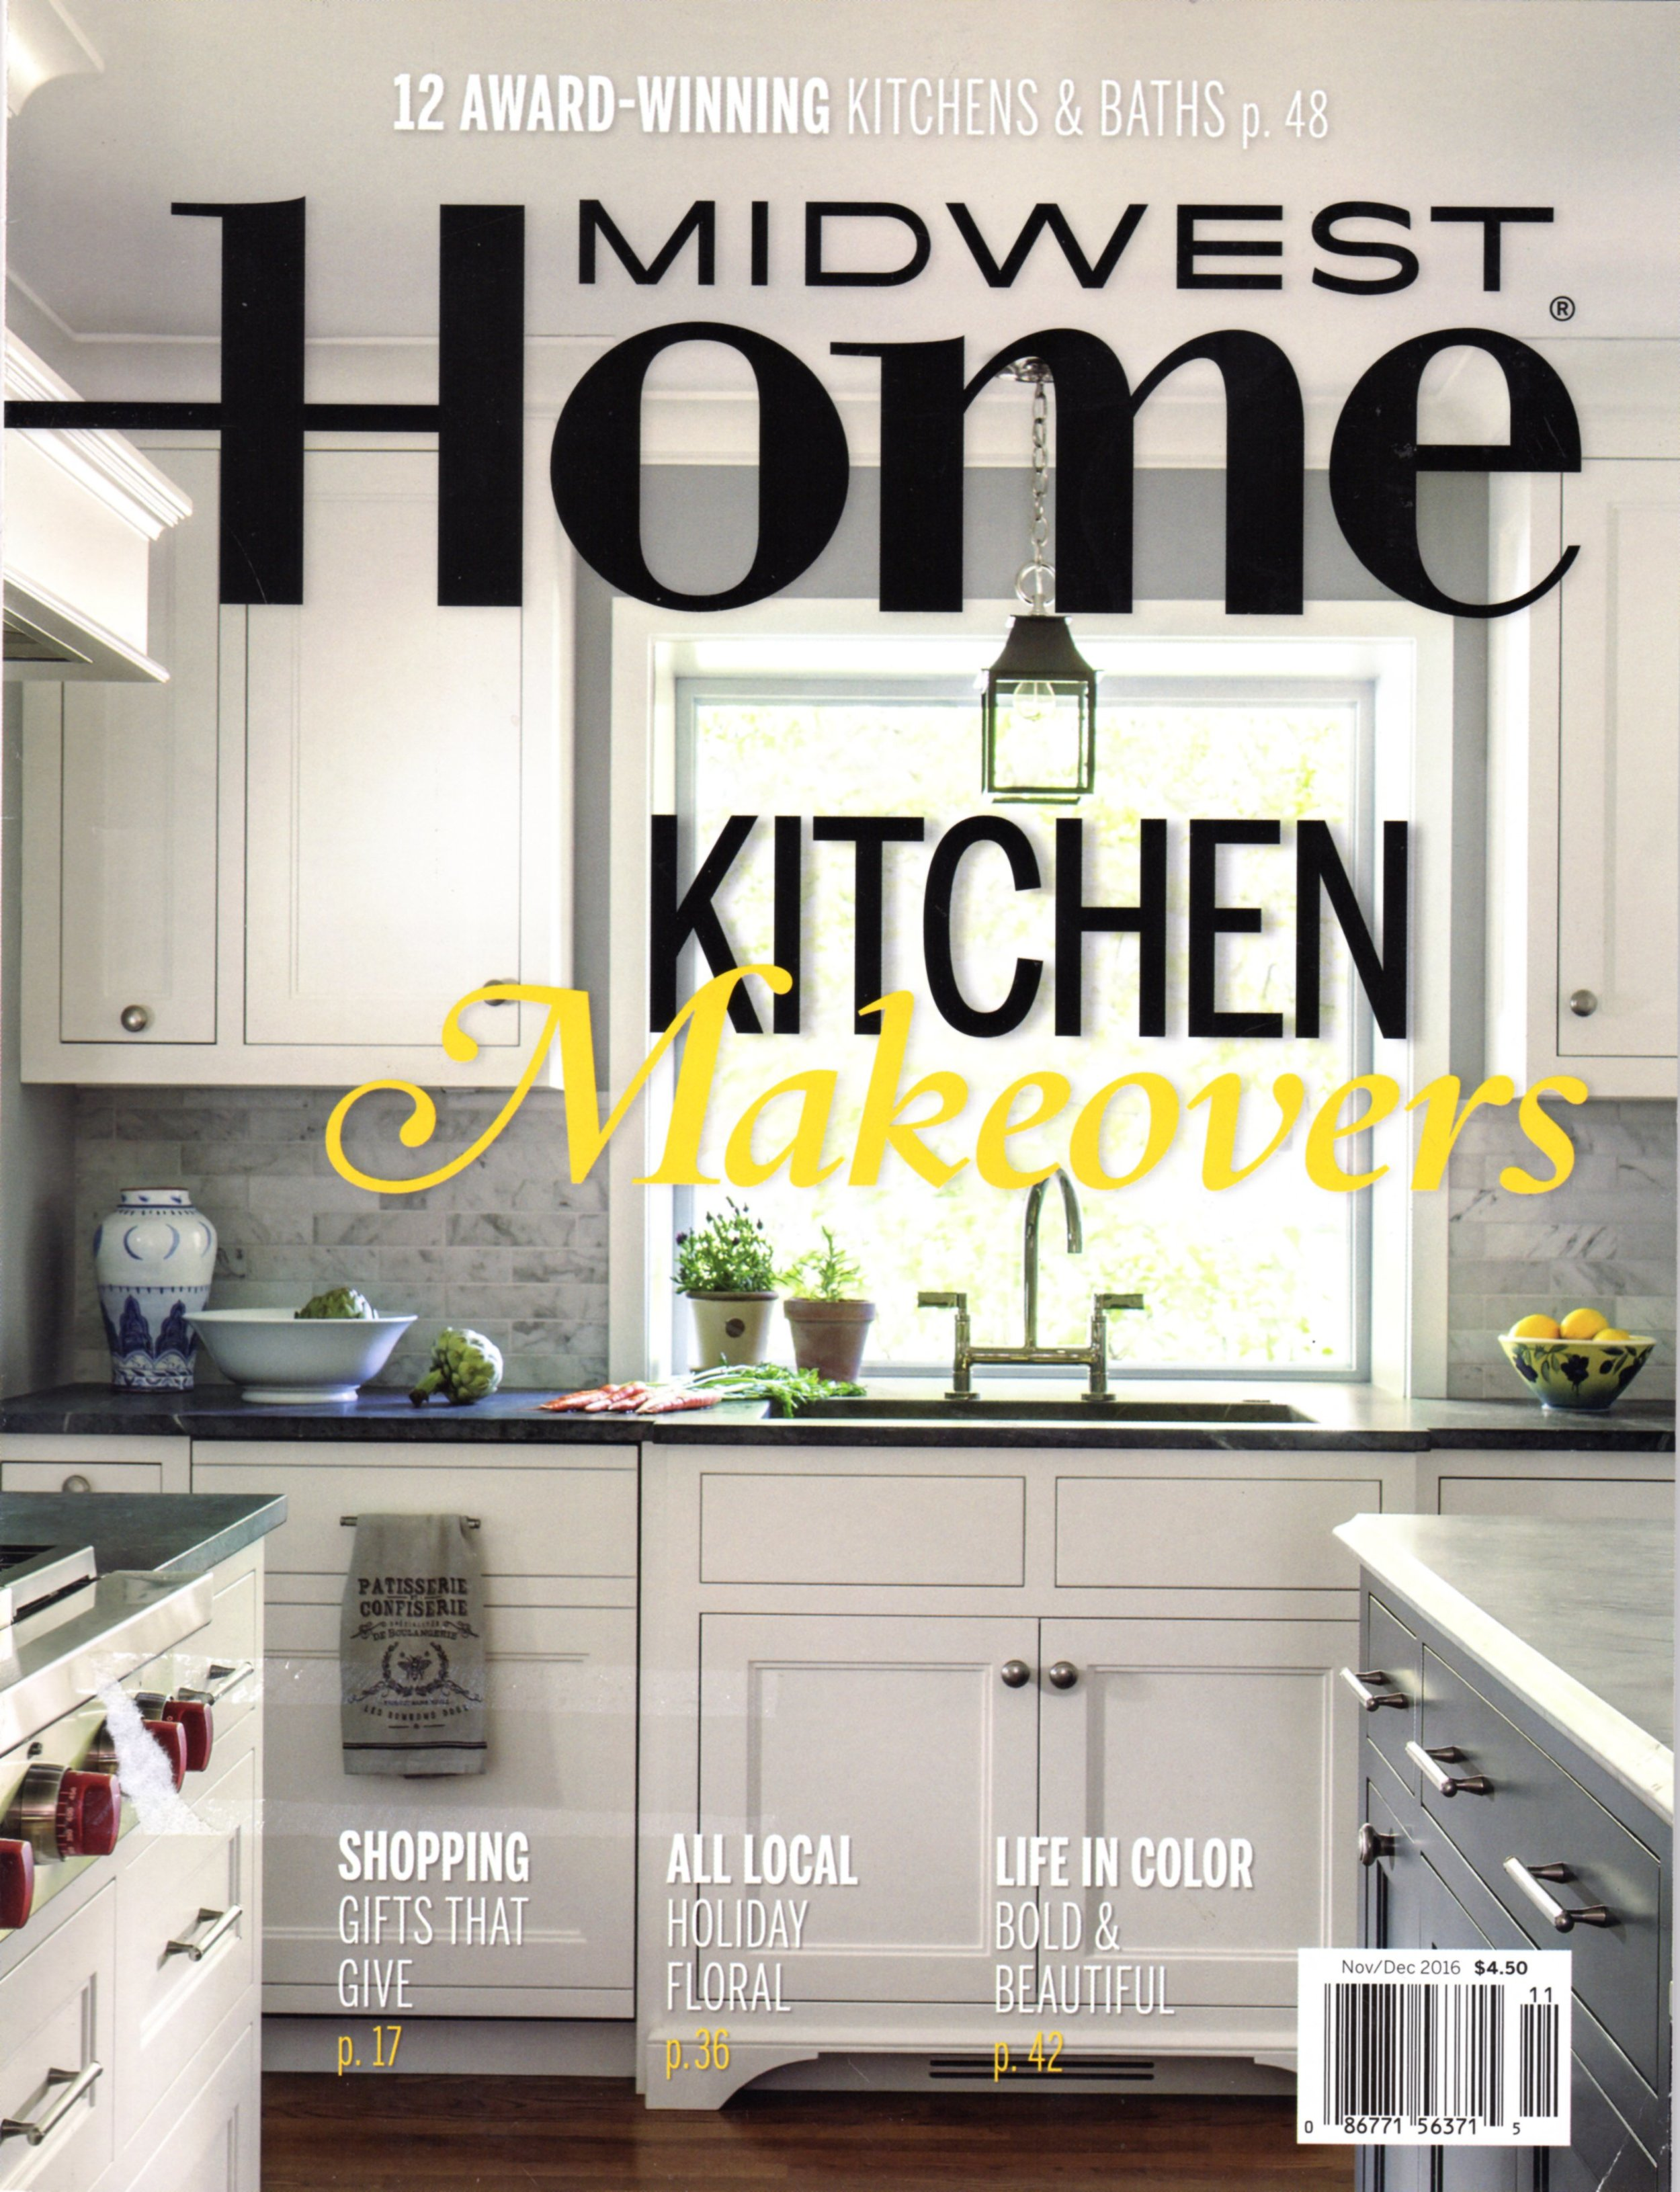 Midwest Home Kitchen Makeovers.jpg